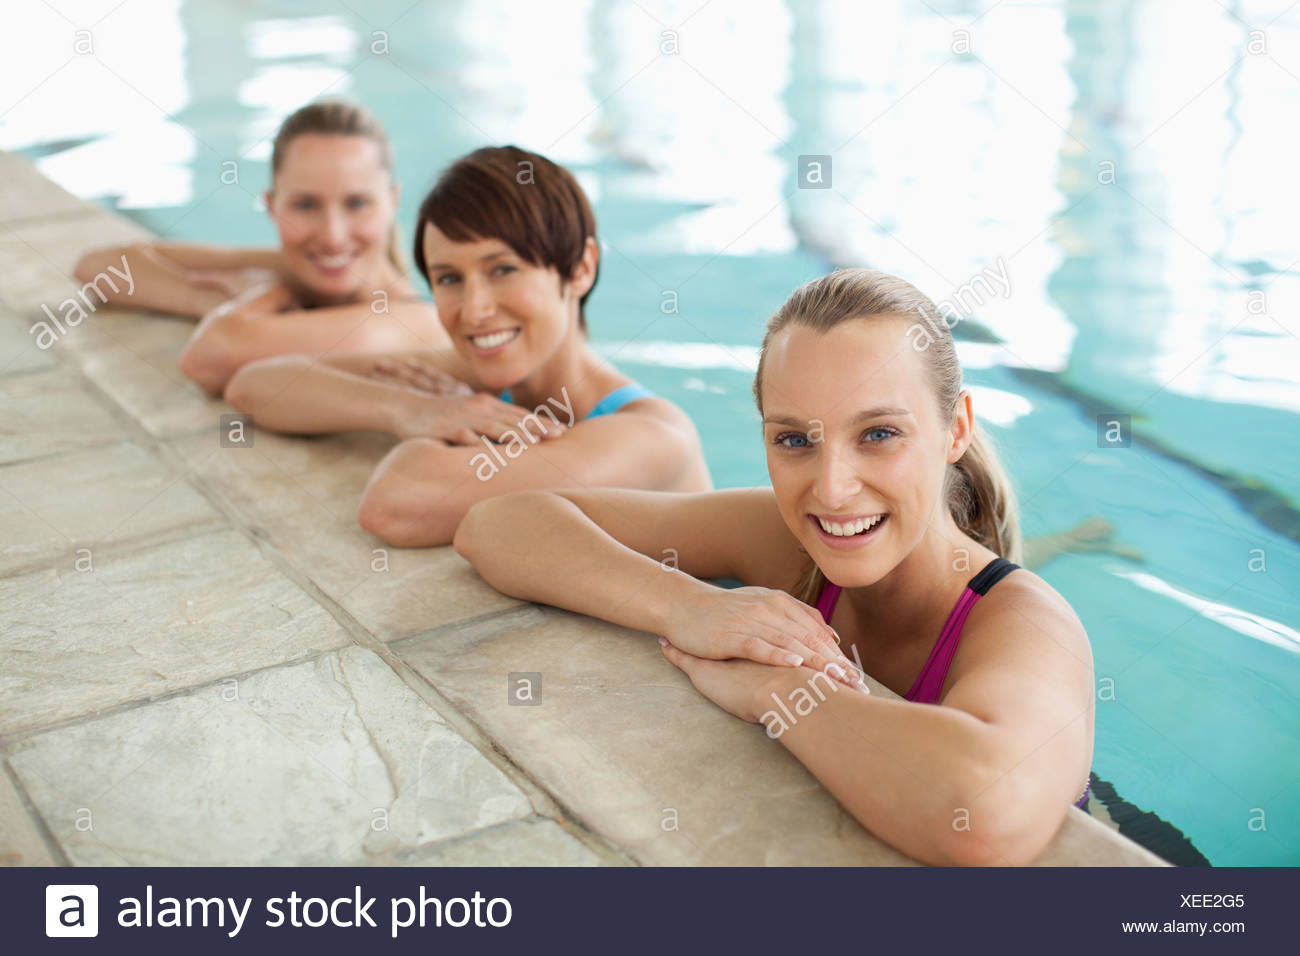 Portrait of smiling women leaning on edge of swimming pool Photo Stock